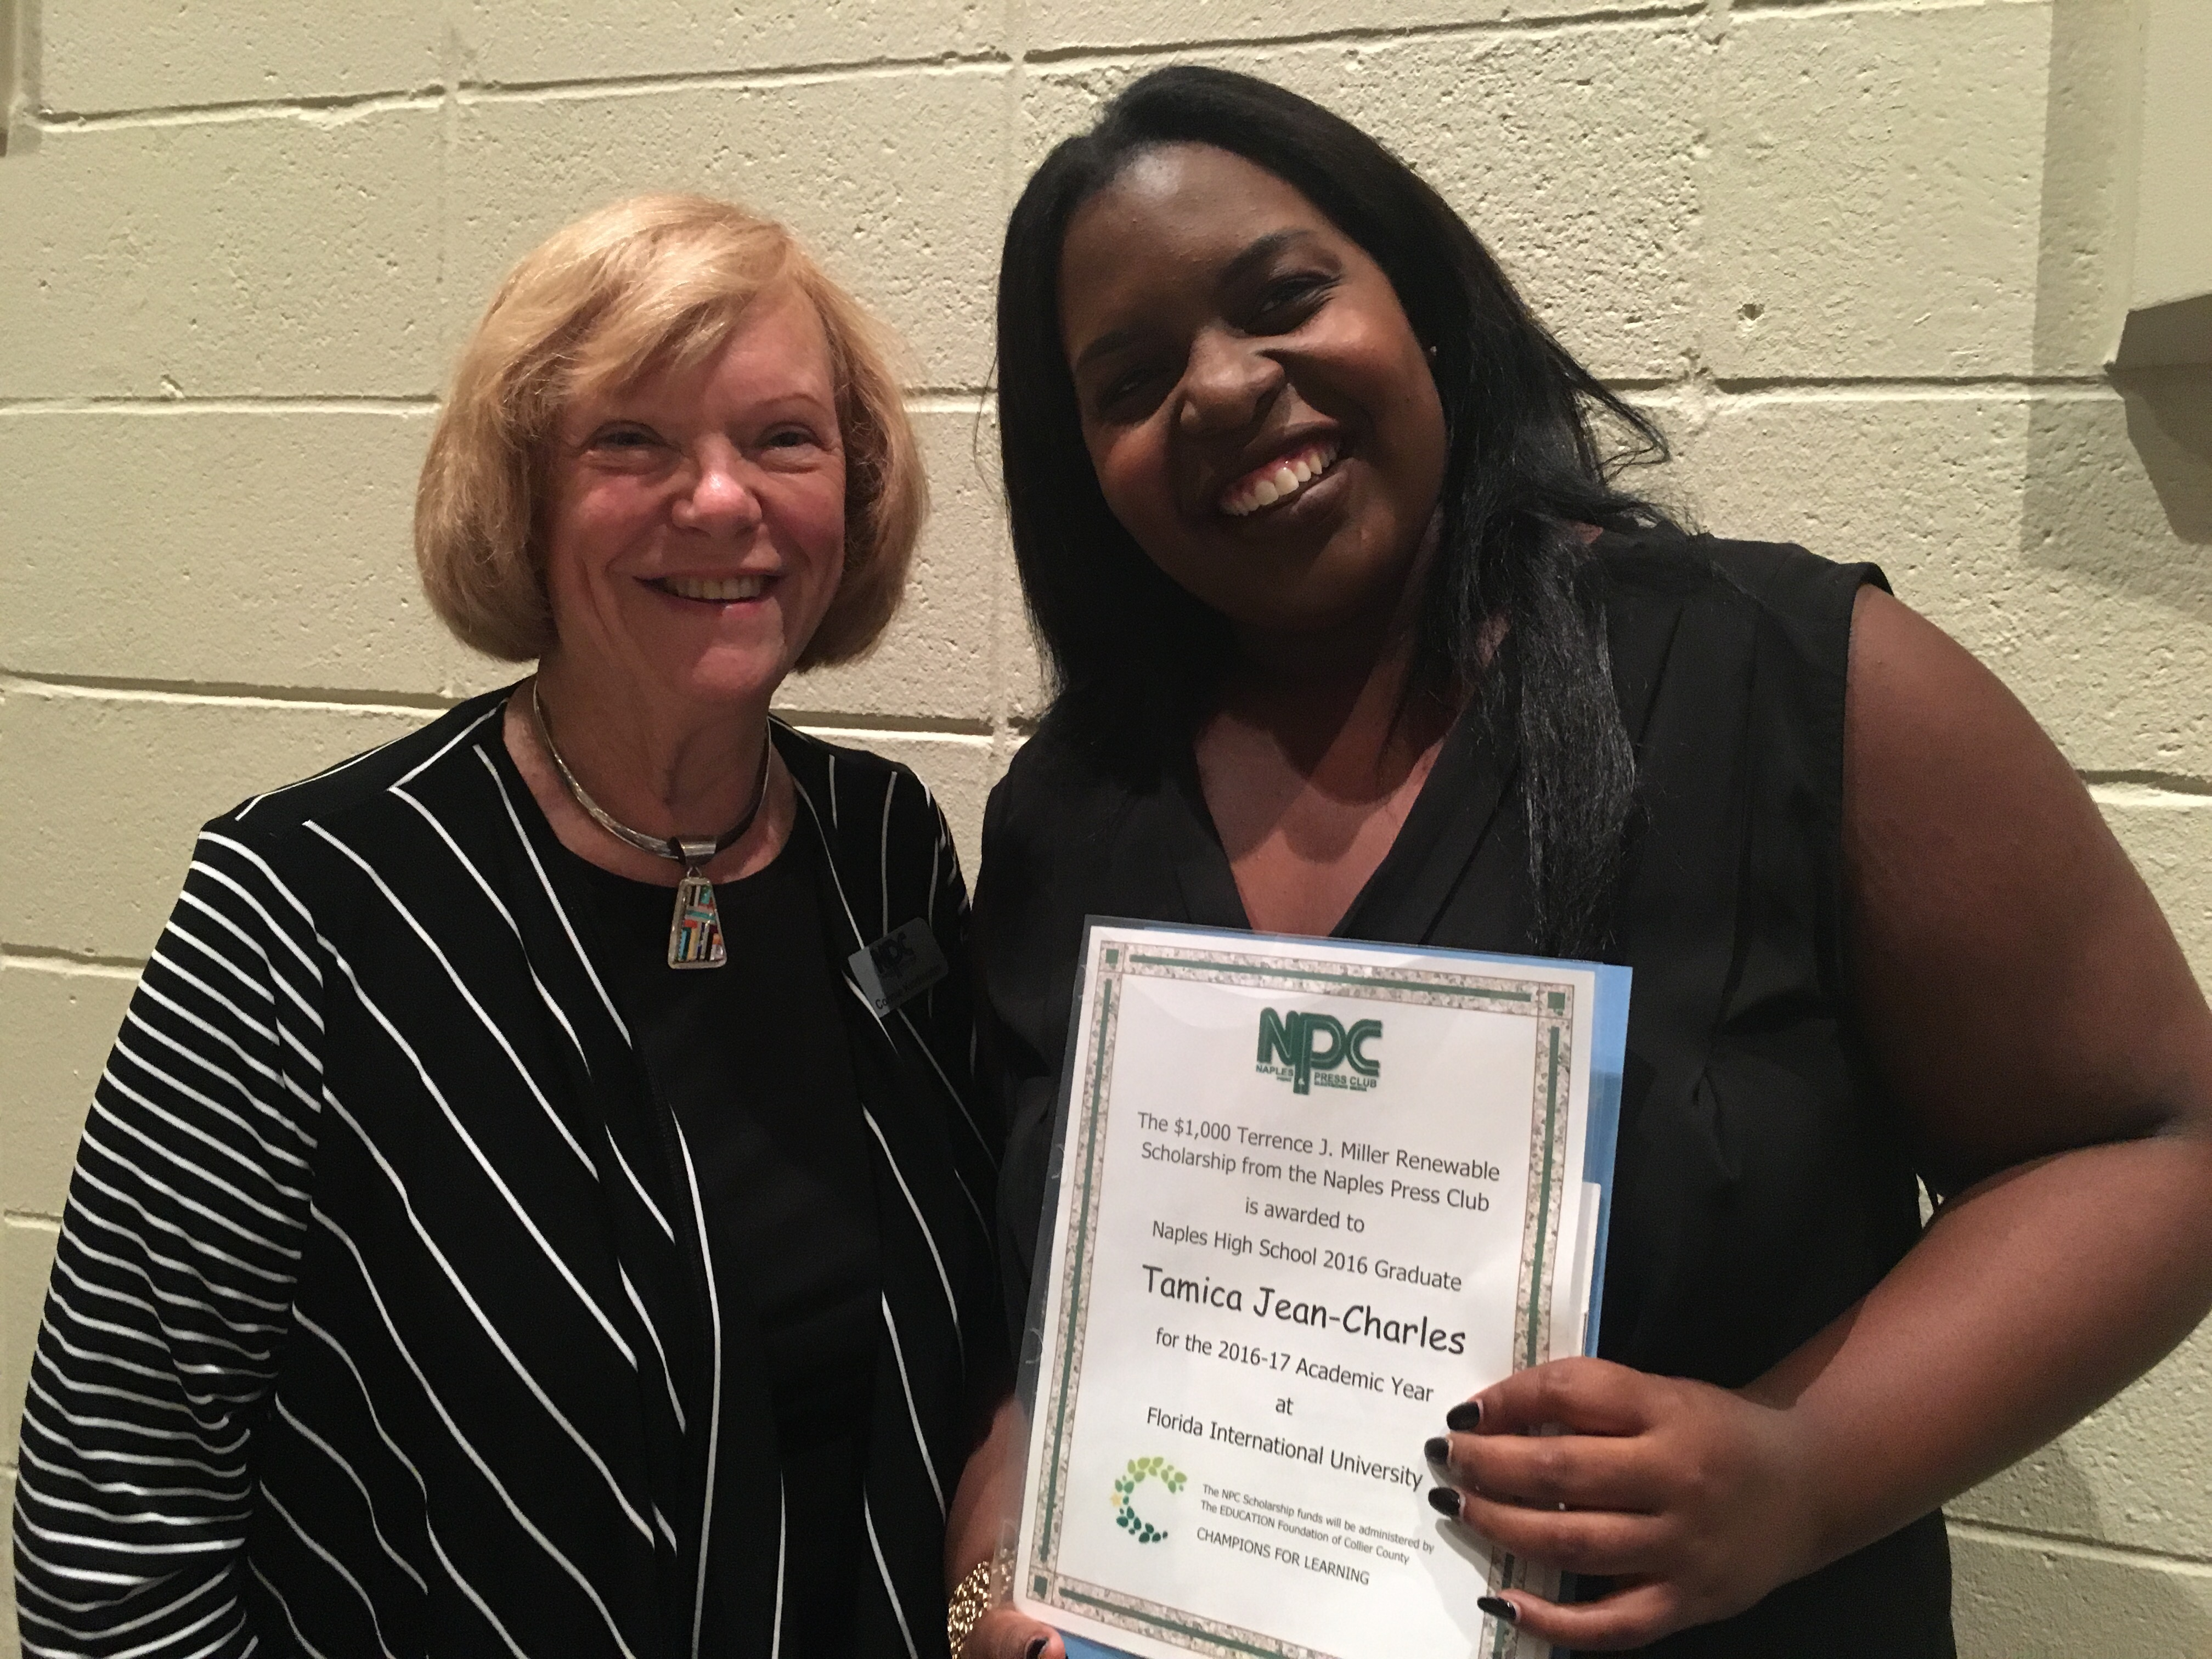 Connie Kindsvater and Tamica Jean-Charles at Naples High School